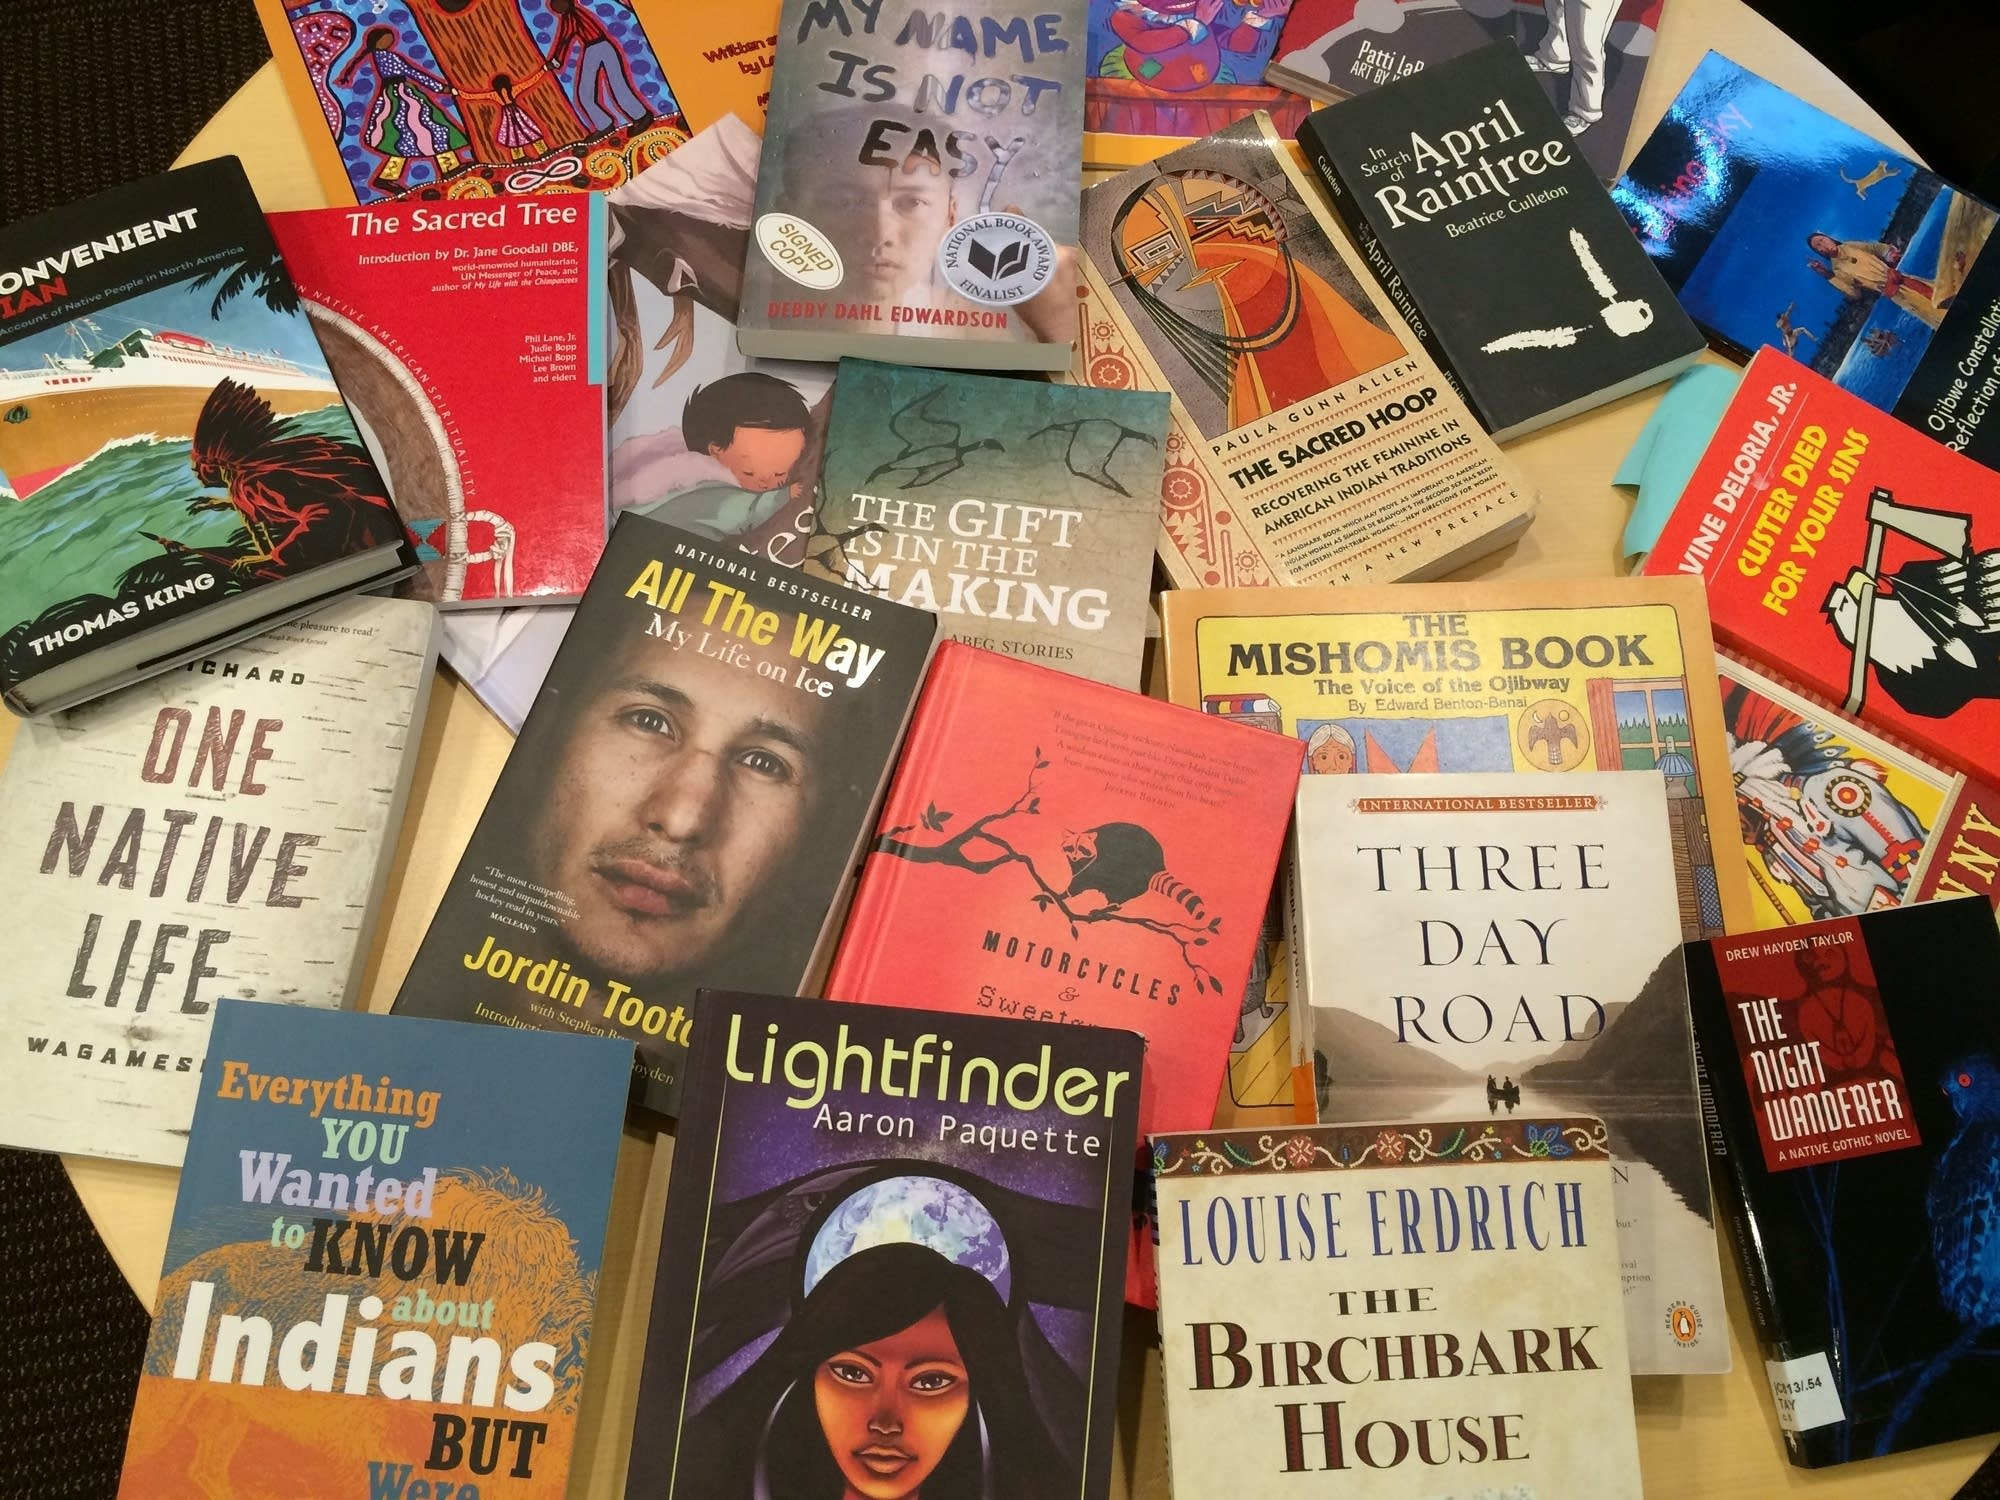 A collection of books by Native authors